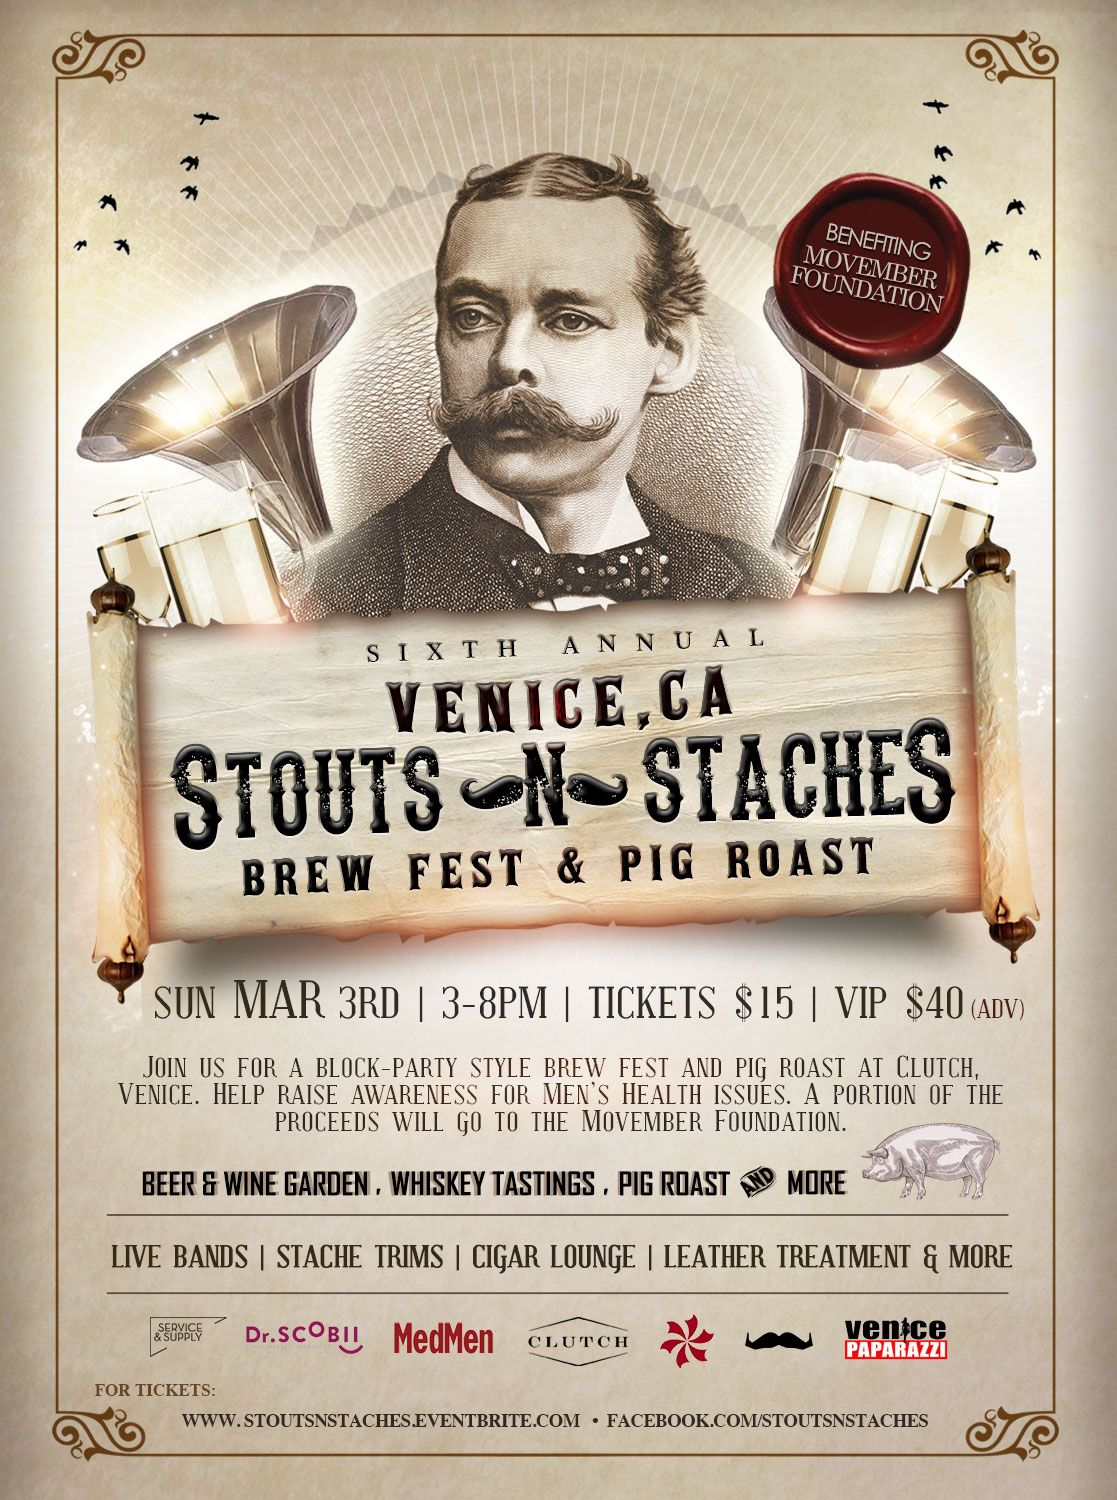 6th Annual Stouts n Staches Brew Fest & Pig Roast